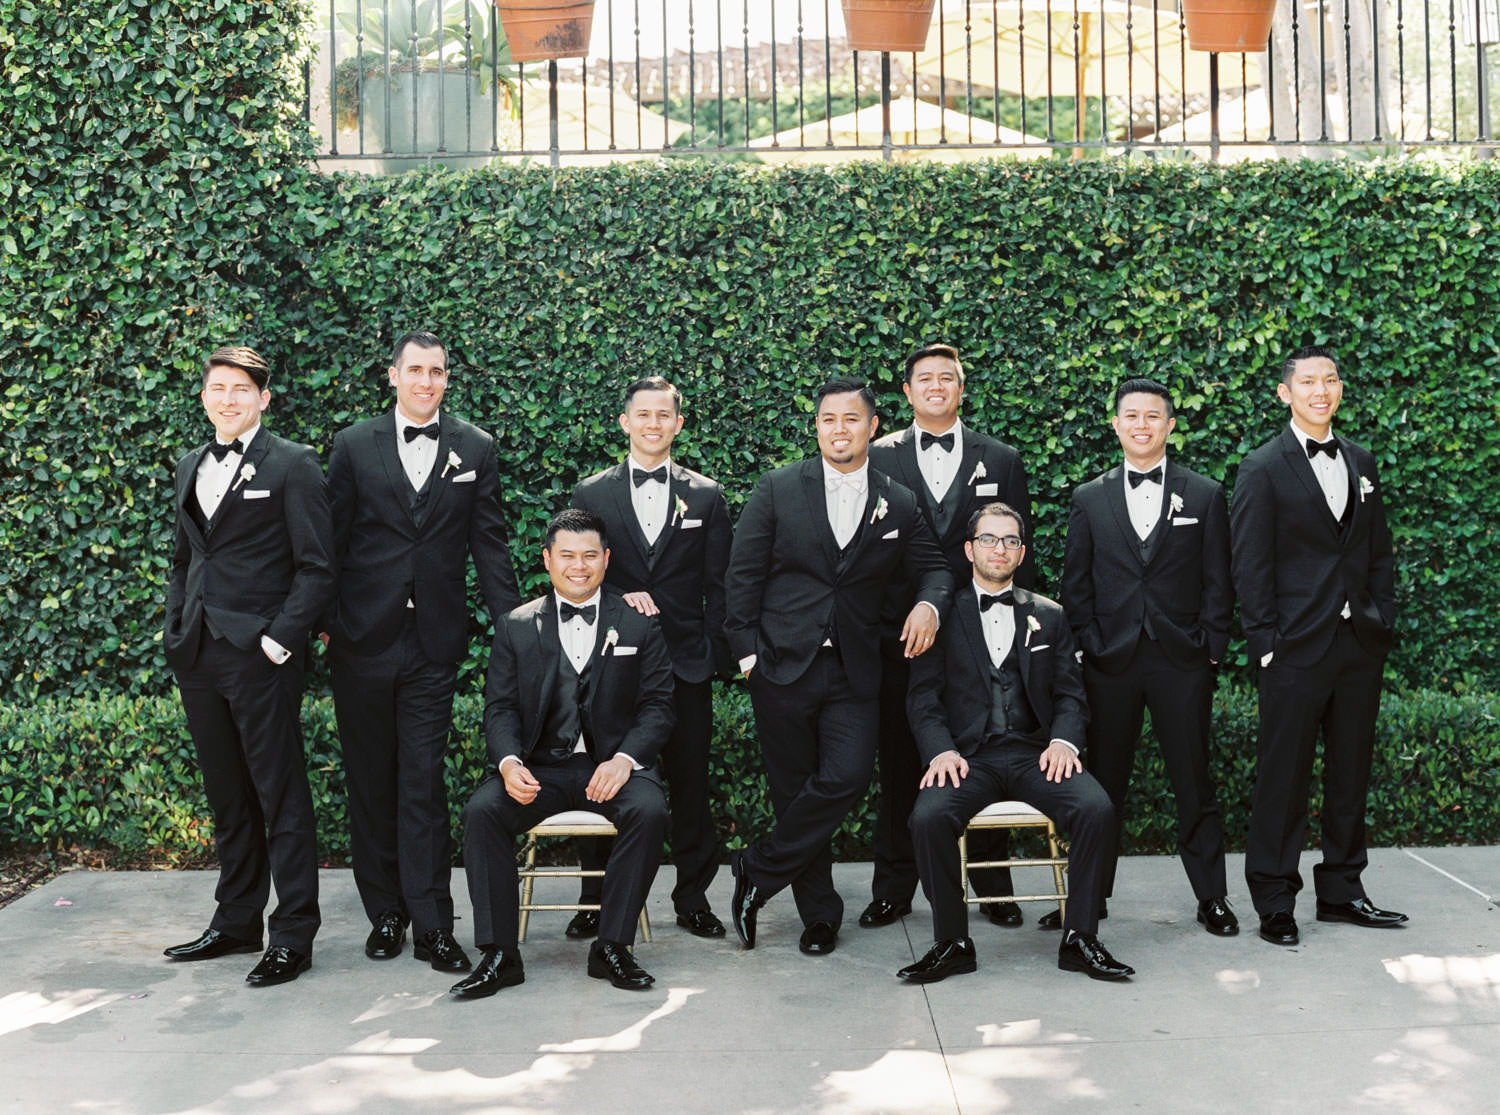 Groomsmen posed with chairs captured on film, Santalux Club wedding reception, Cavin Elizabeth Photography